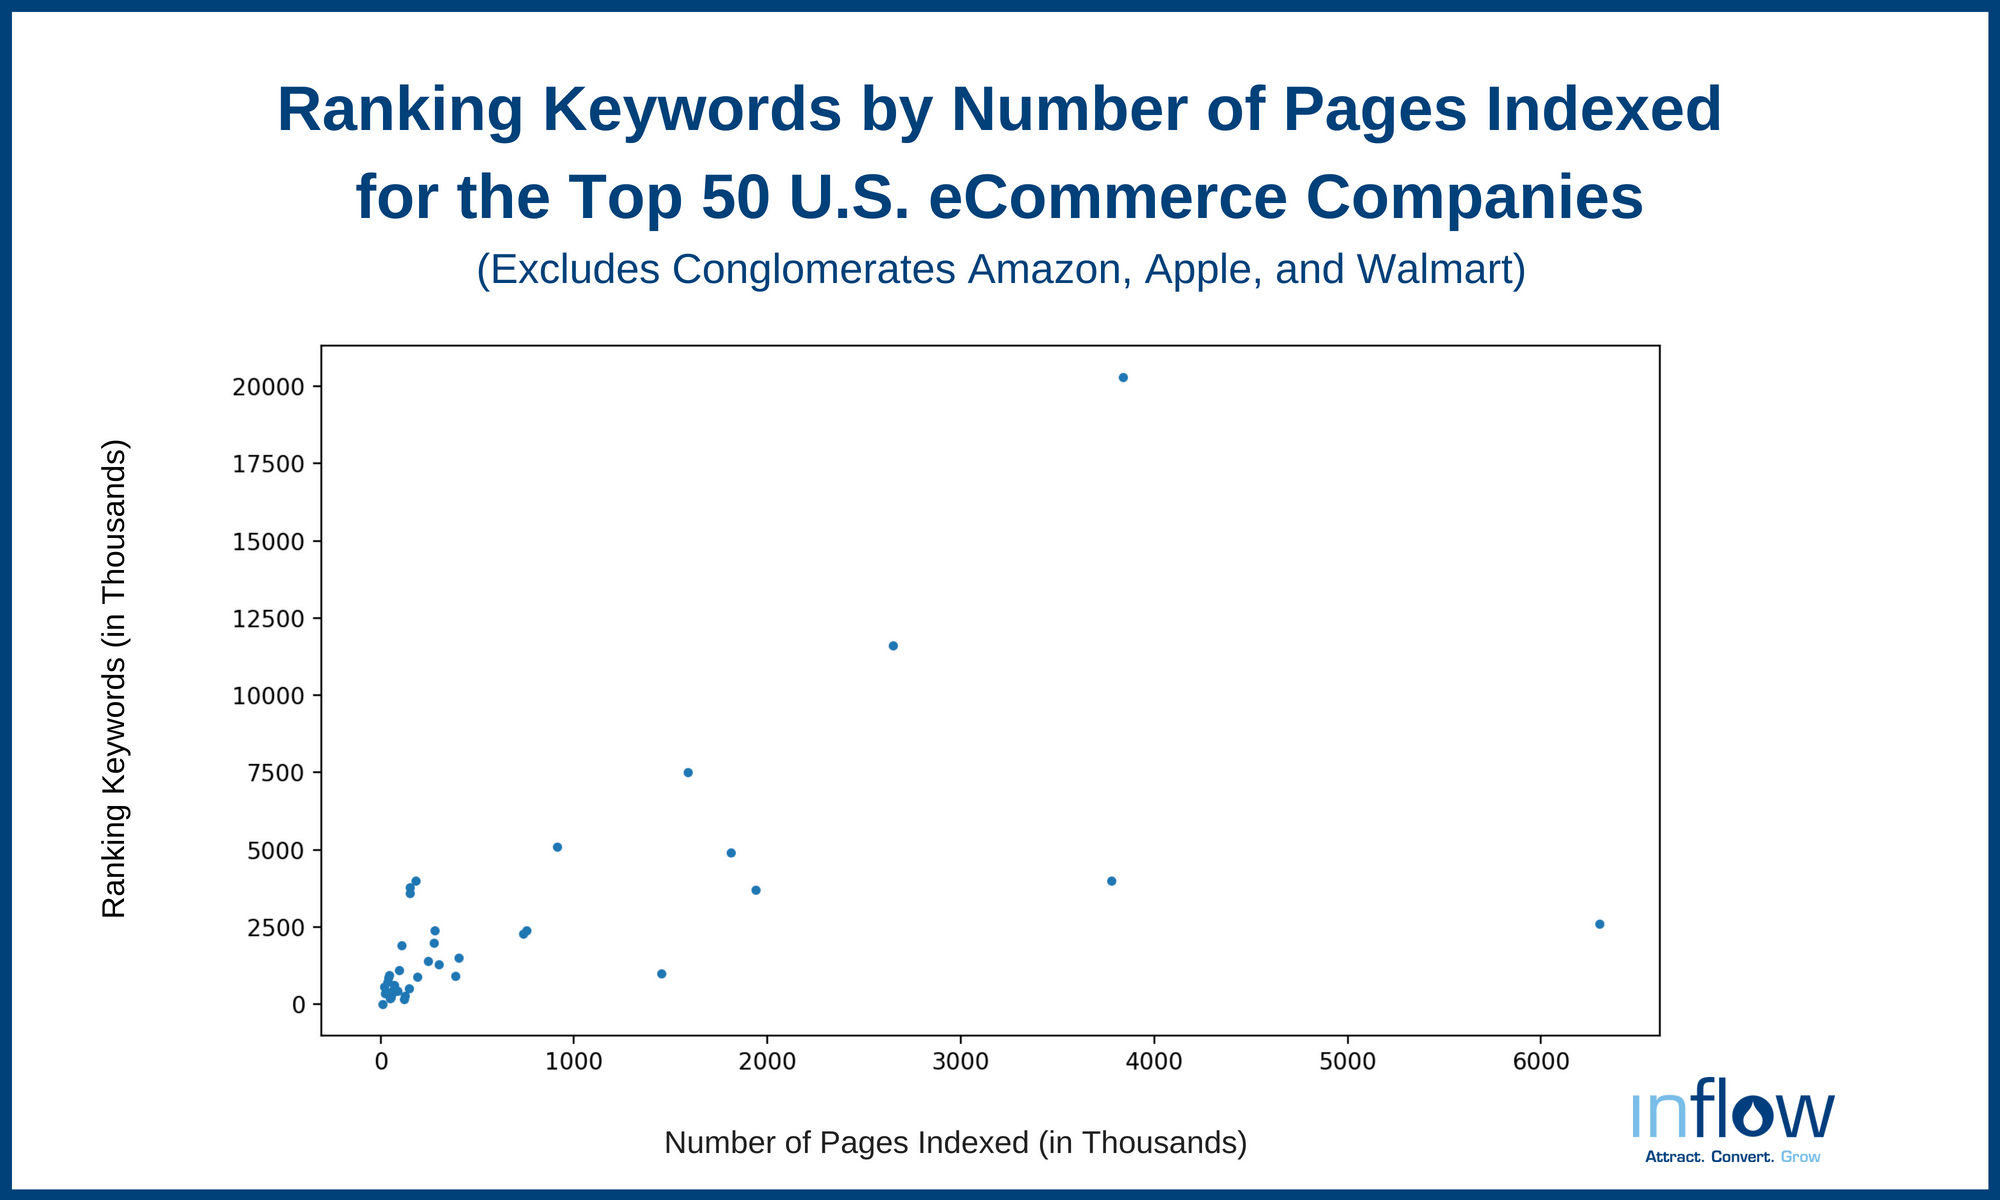 Ranking Keywords for Number of Pages Indexed for the Top 50 U.S. eCommerce Companies